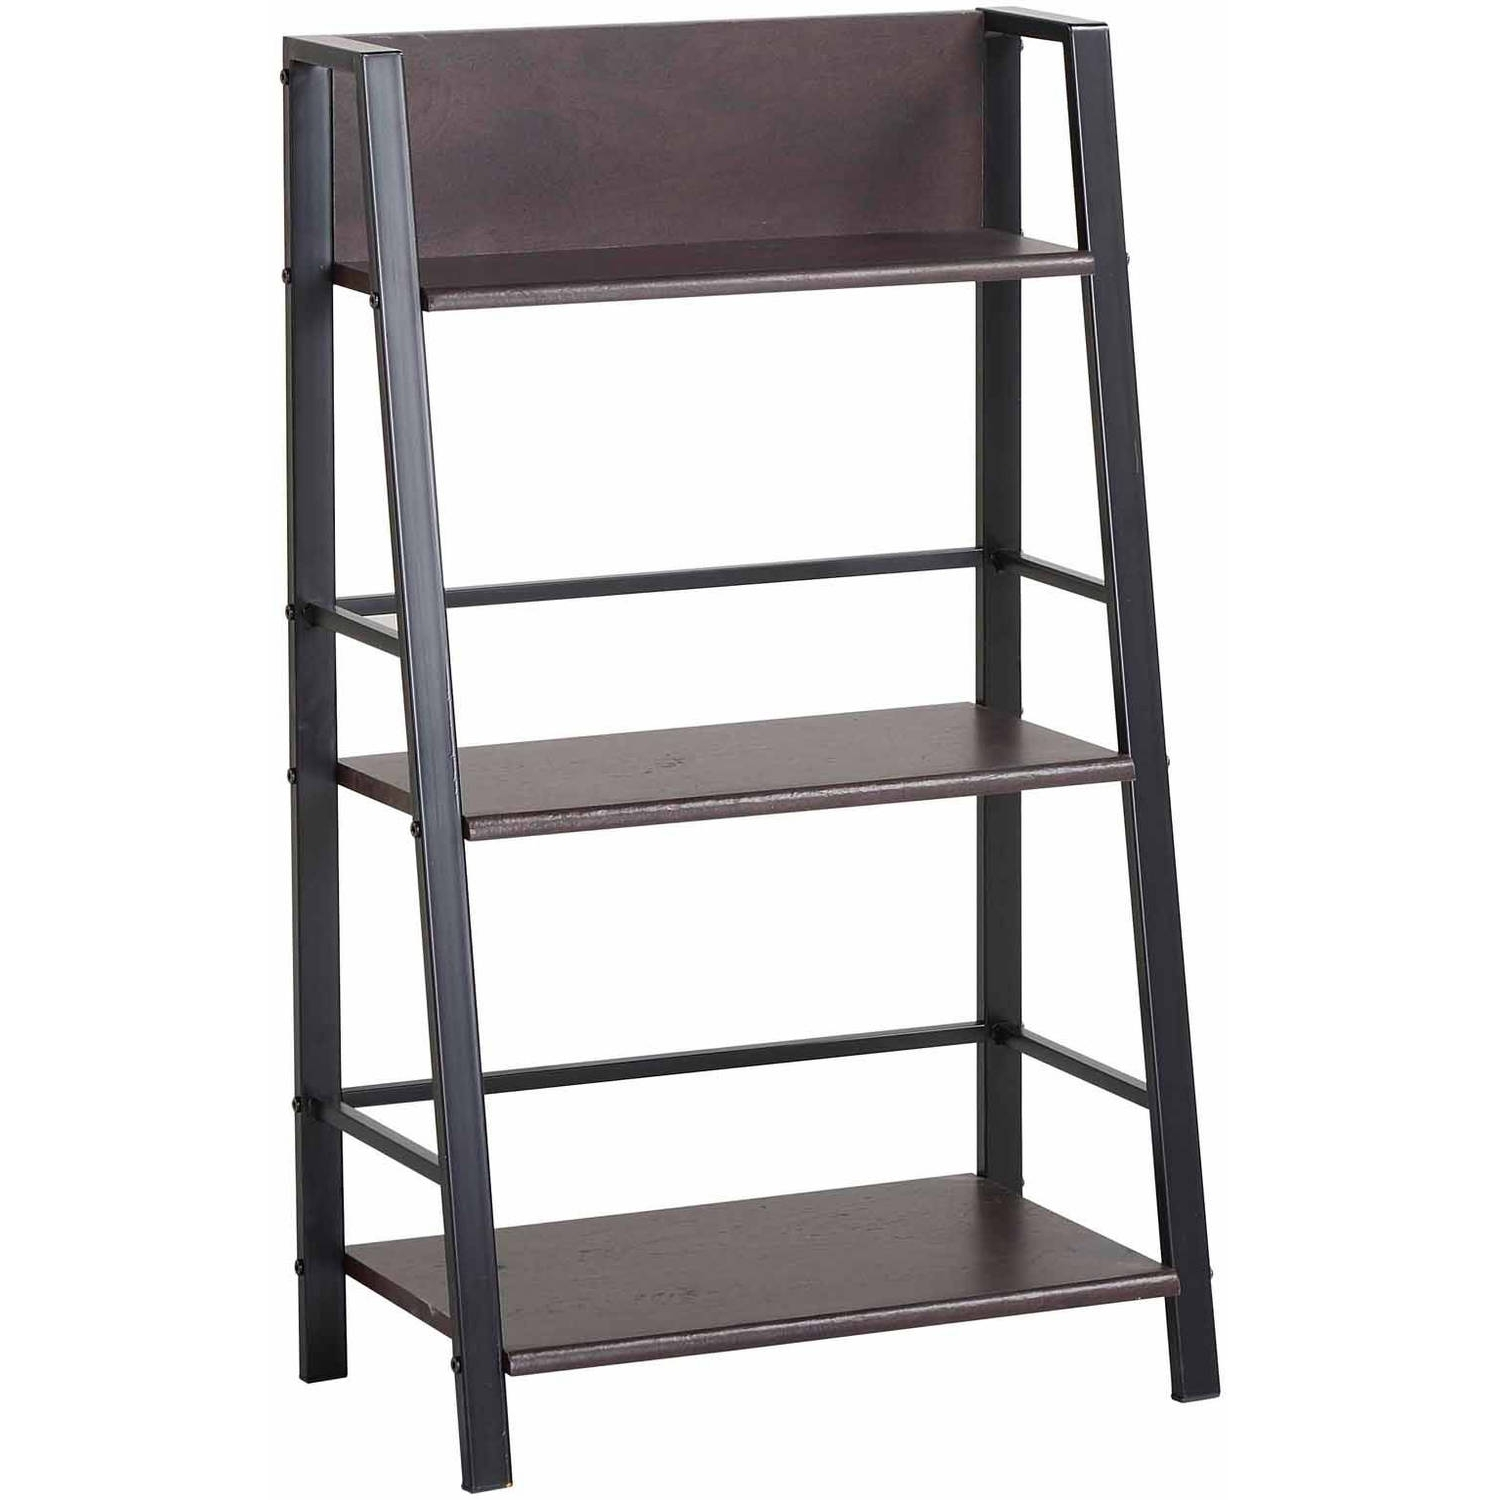 3 Shelf Bookcases Intended For Latest Mainstays 3 Shelf Bookcase, Multiple Finishes – Walmart (View 13 of 15)